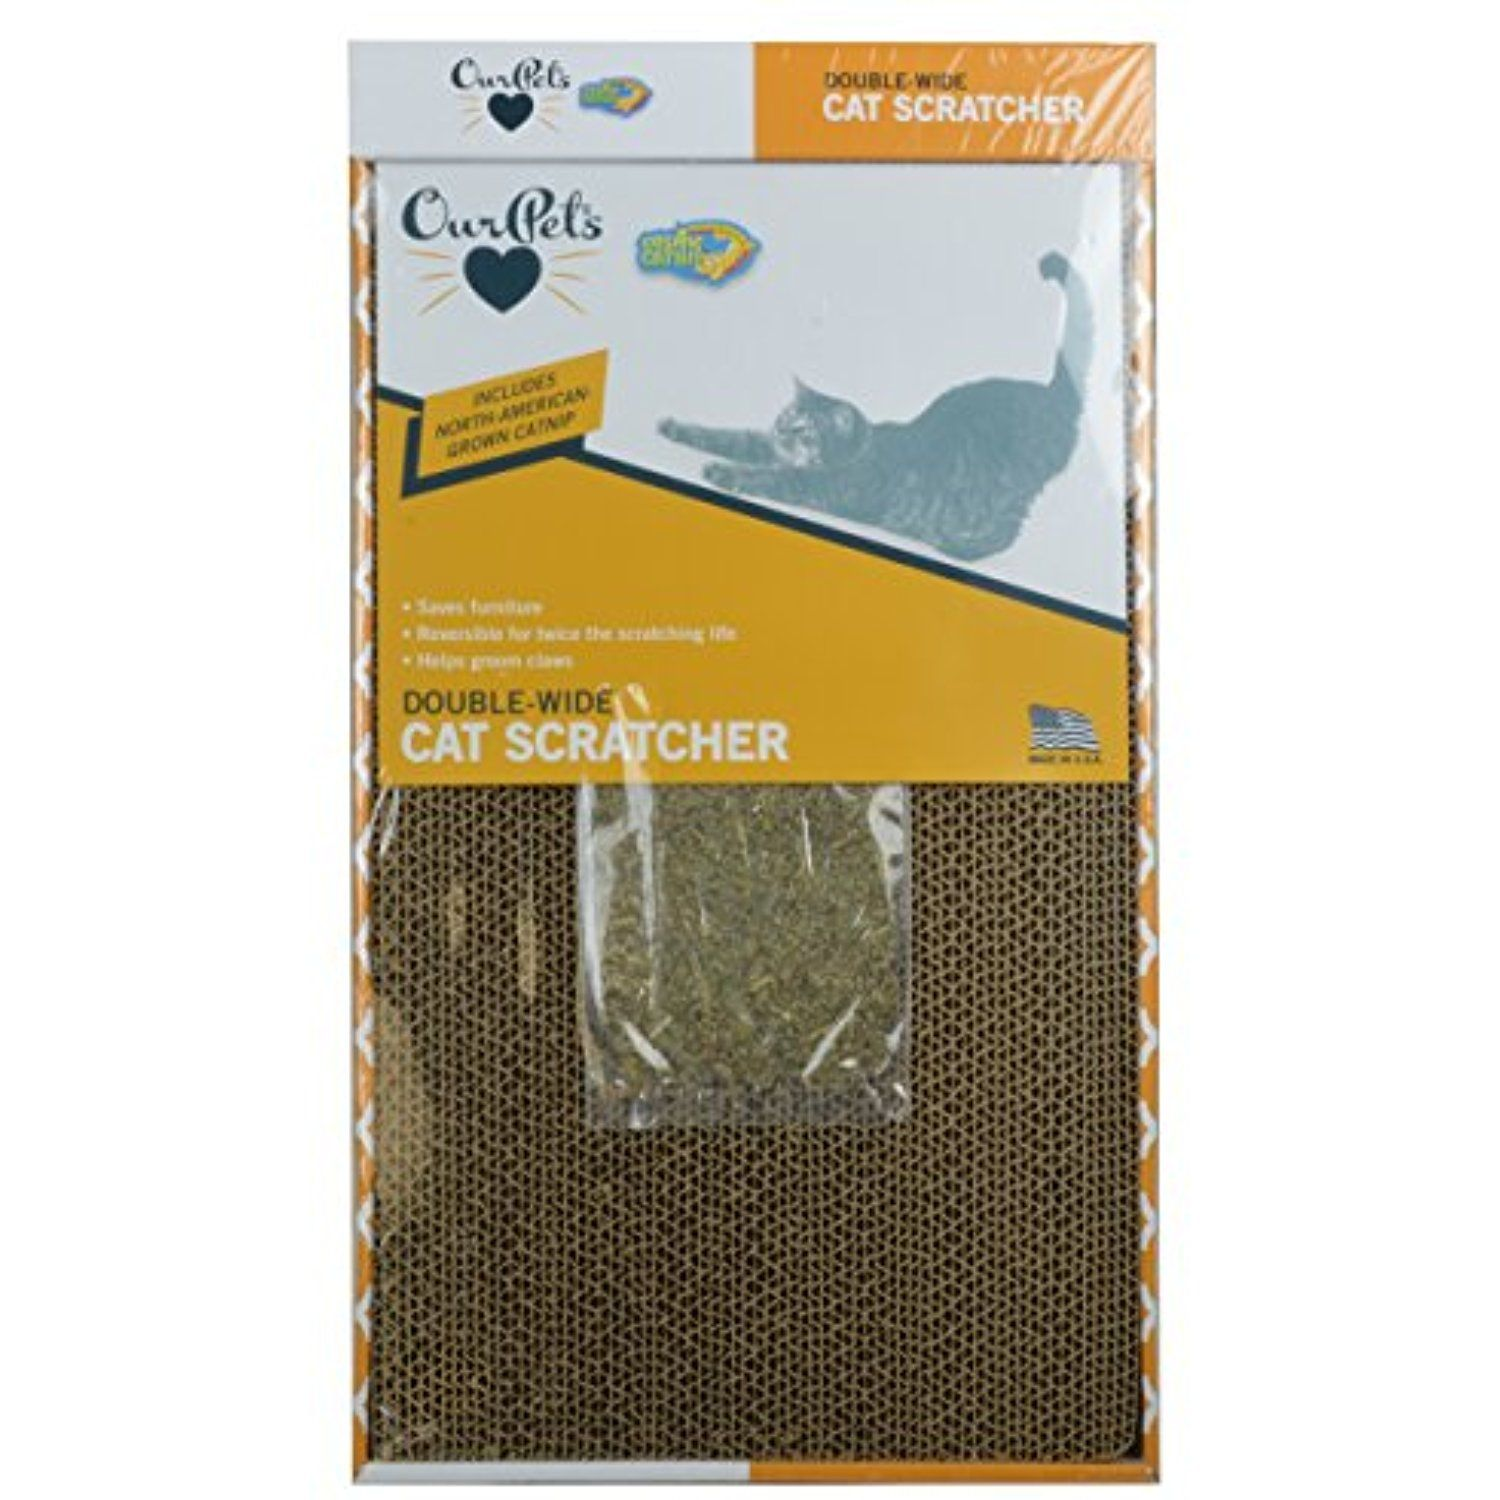 OurPets Far and Wide Cat Scratcher with NorthAmerican